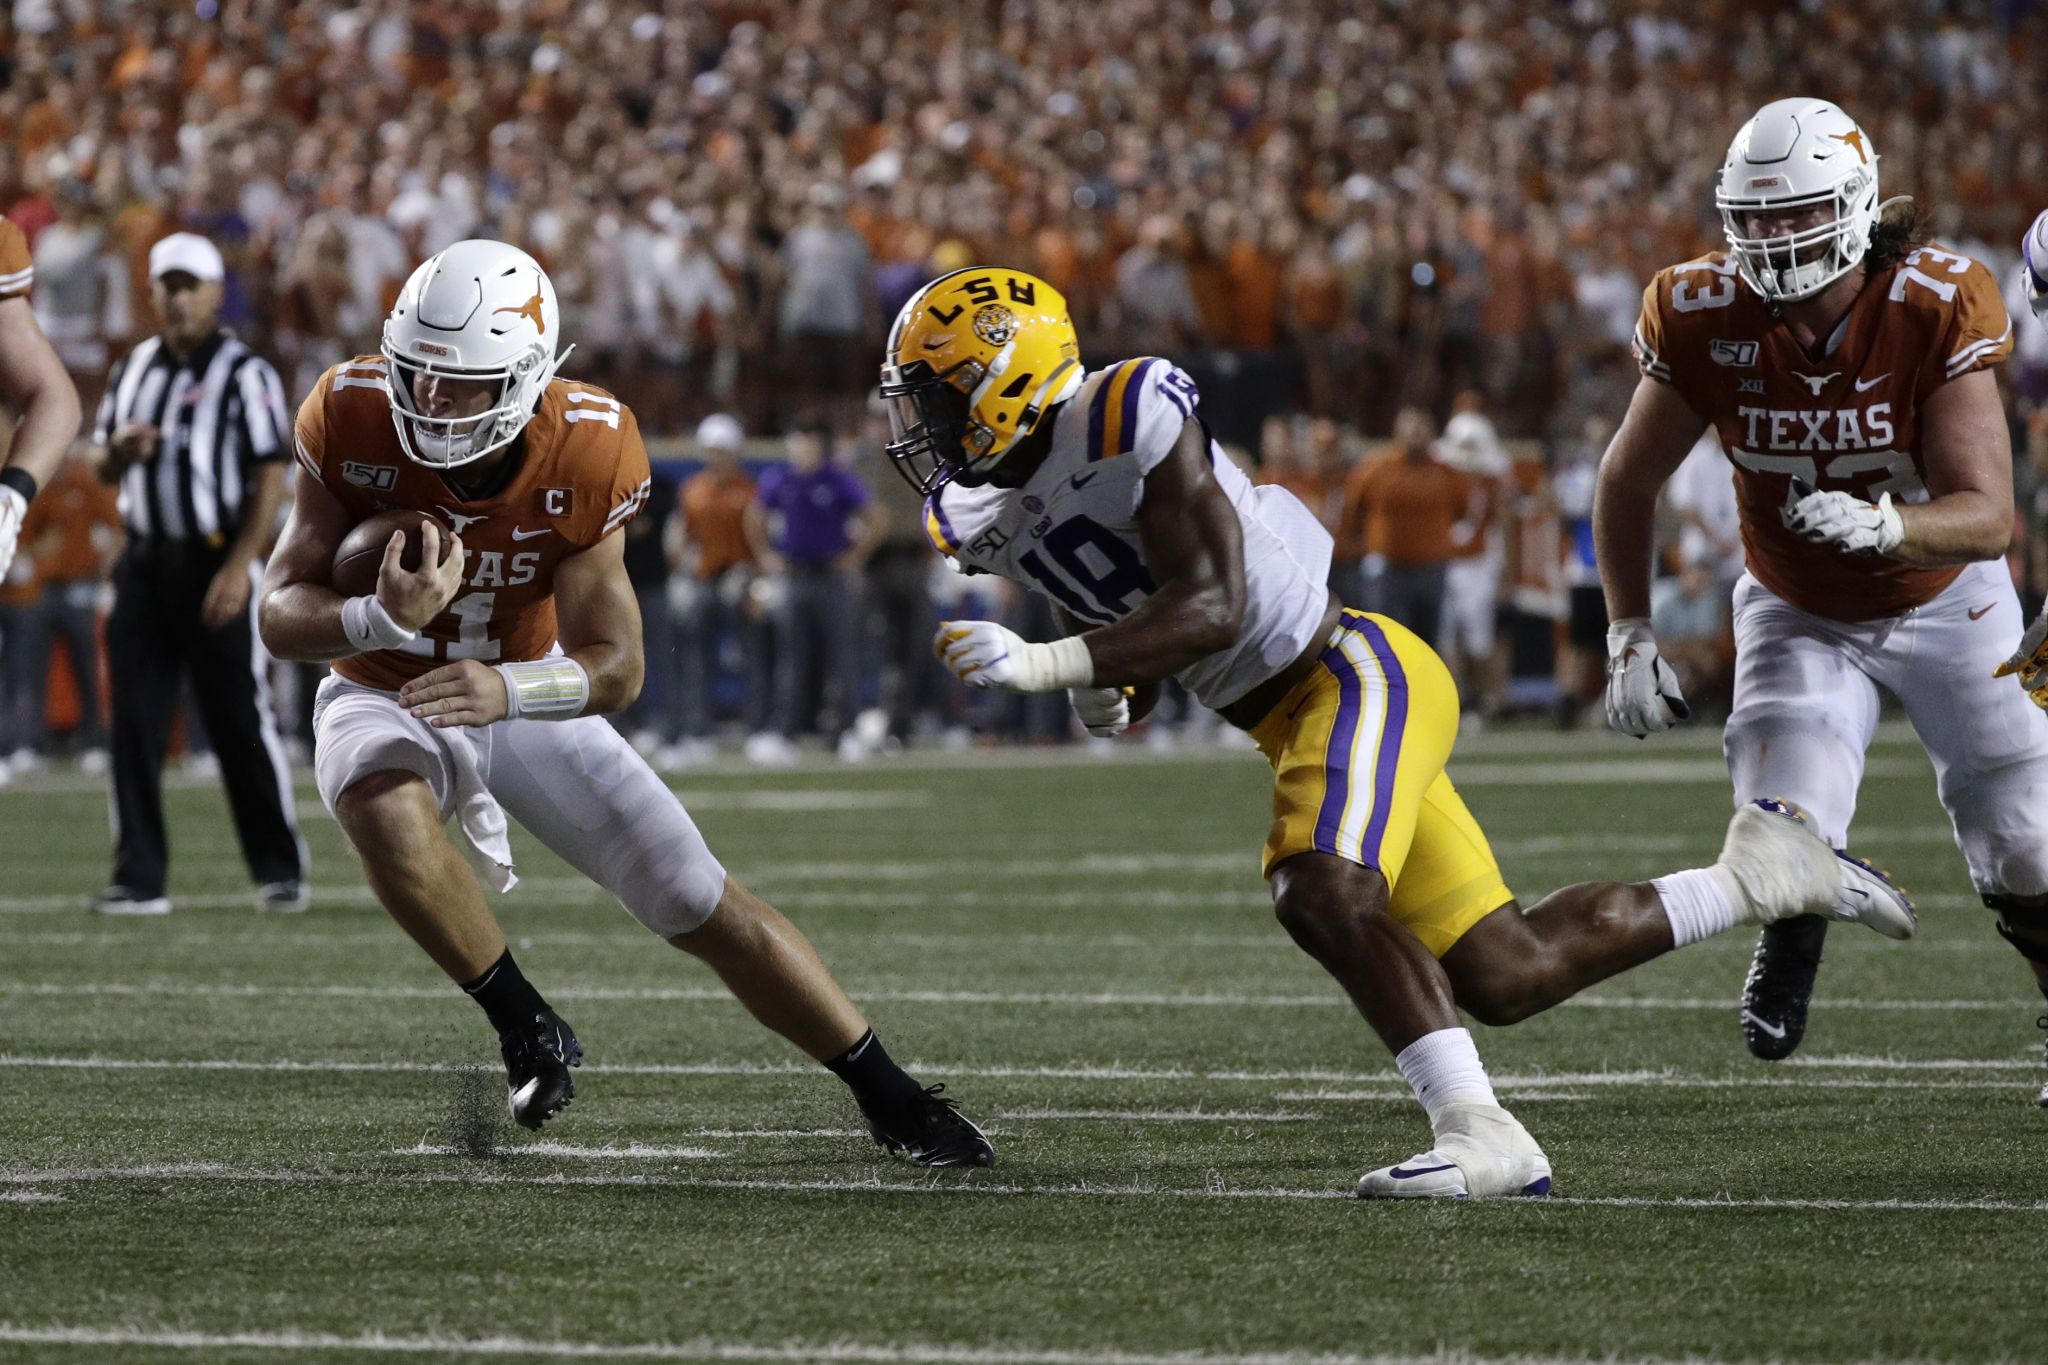 Texas Lsu Football Game May Be In Jeopardy Houstonchronicle Com